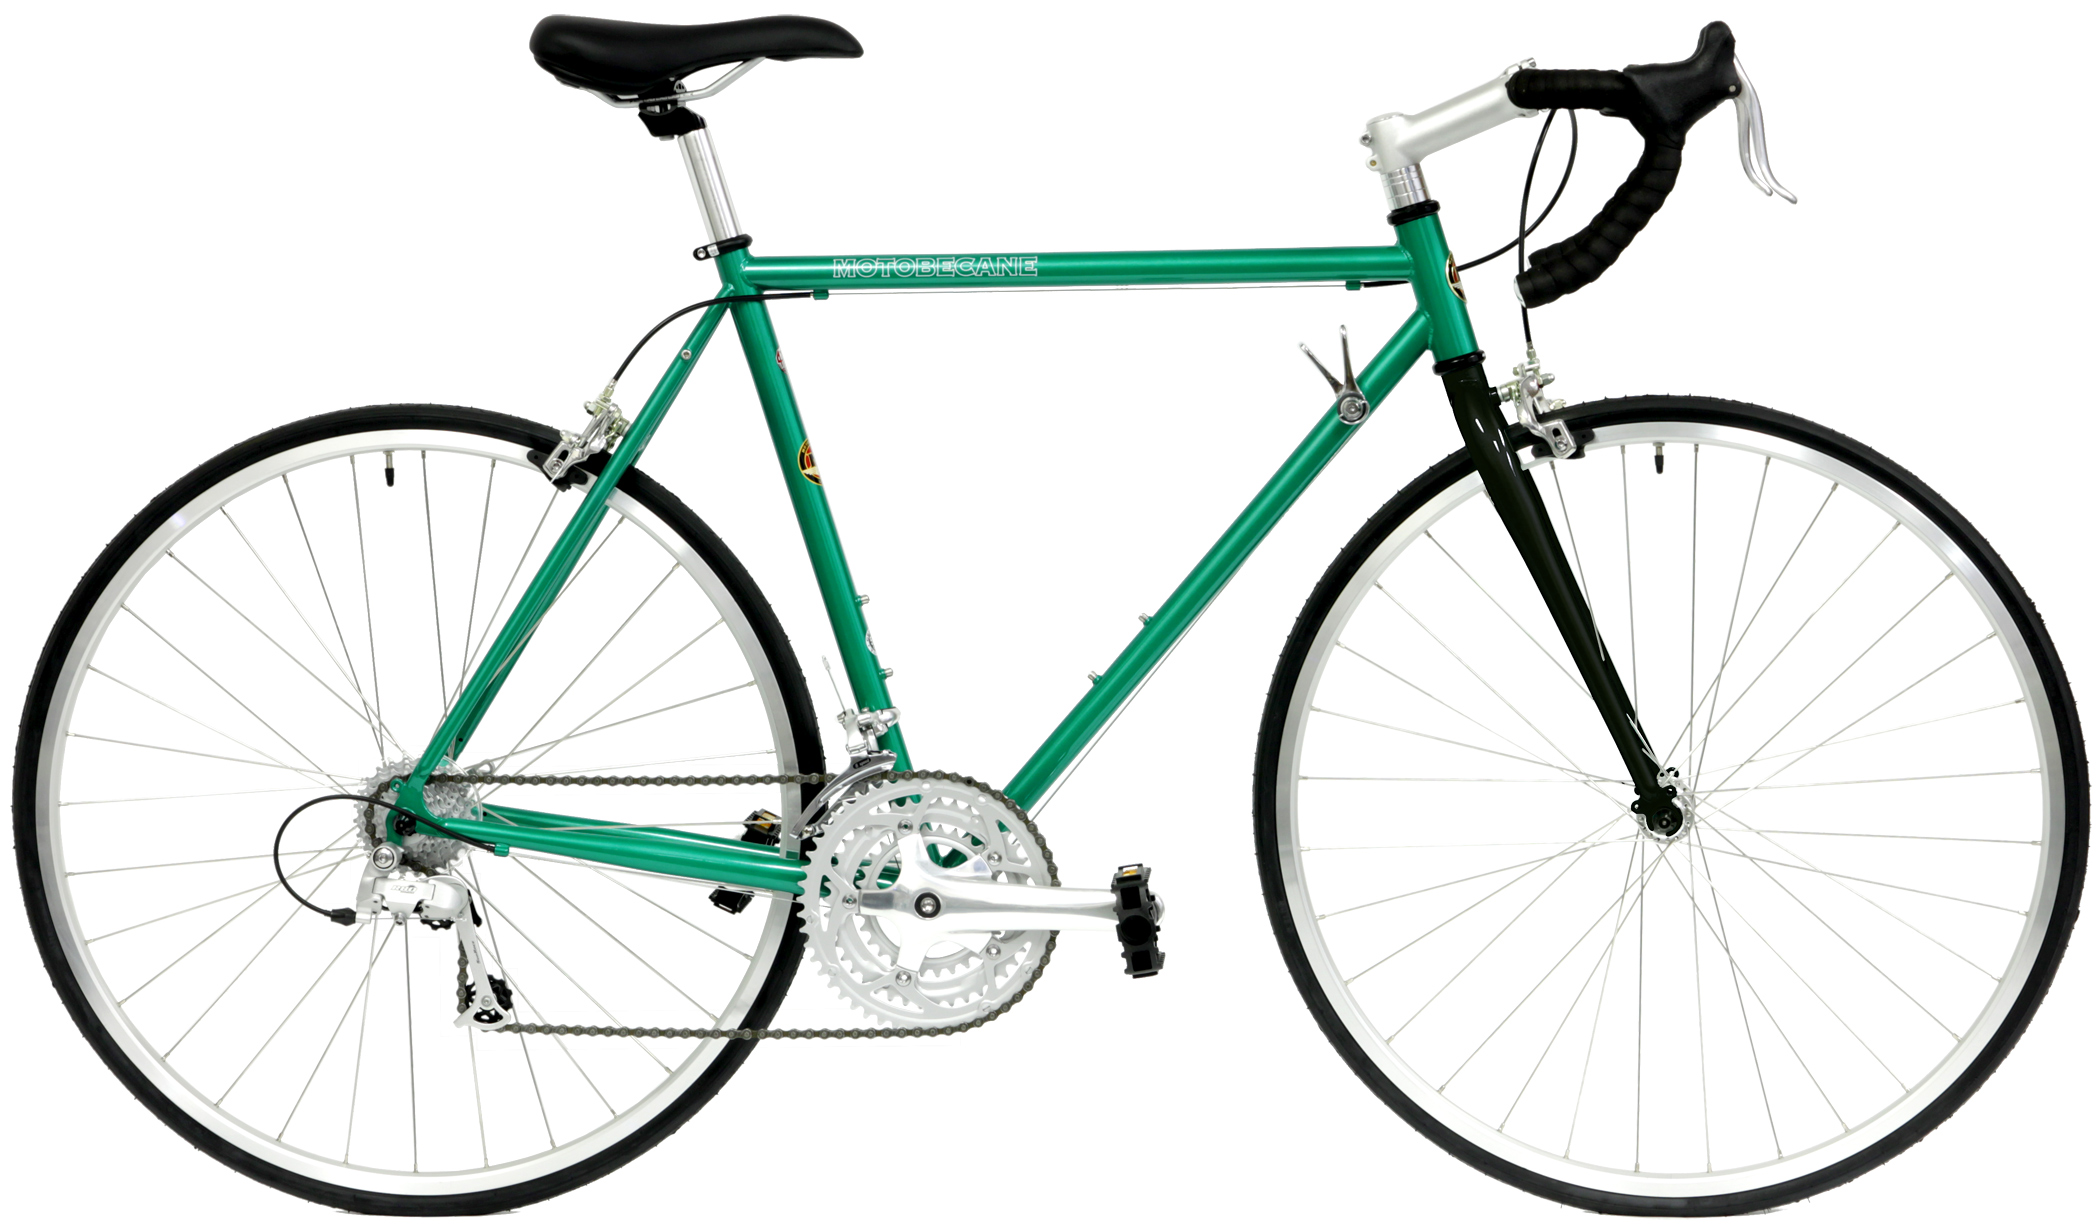 Bikesdirect Motobecane Reviews Road Bikes Motobecane Mirage